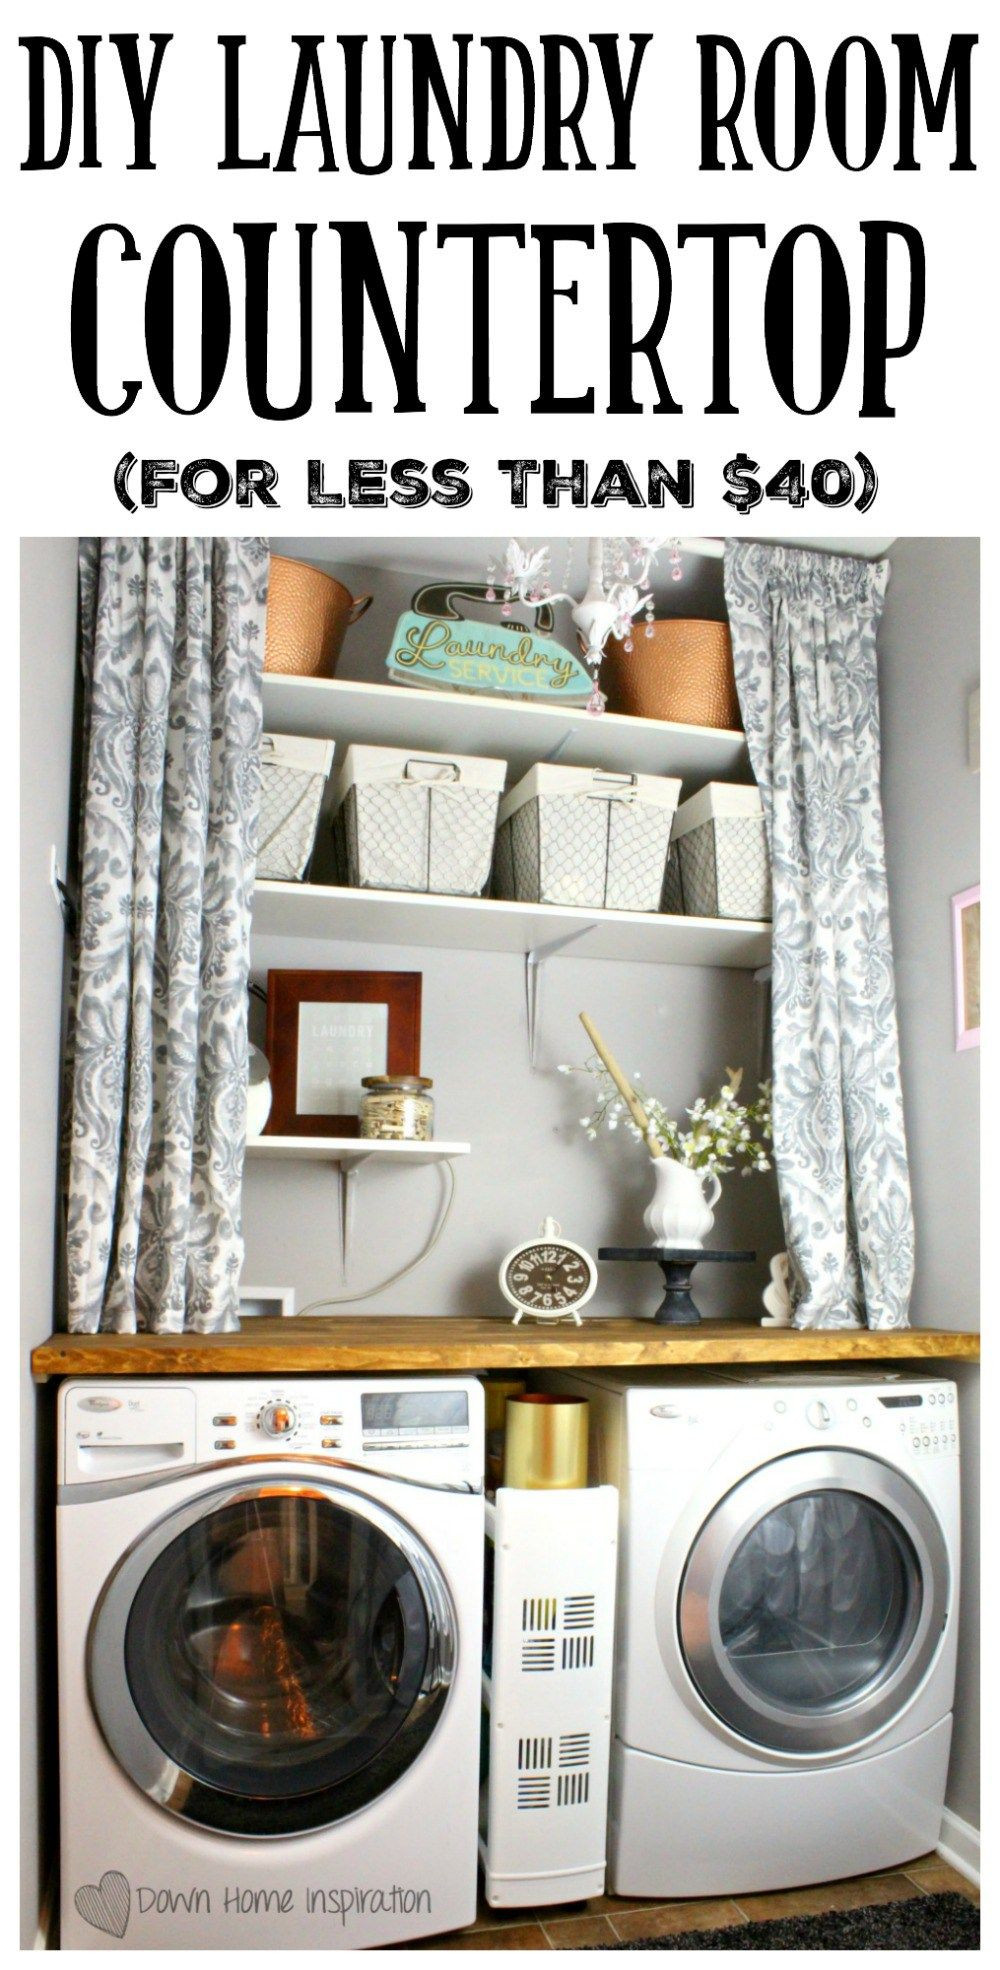 Best ideas about DIY Laundry Room Countertop . Save or Pin DIY Laundry Room Countertop for Under $40 Now.